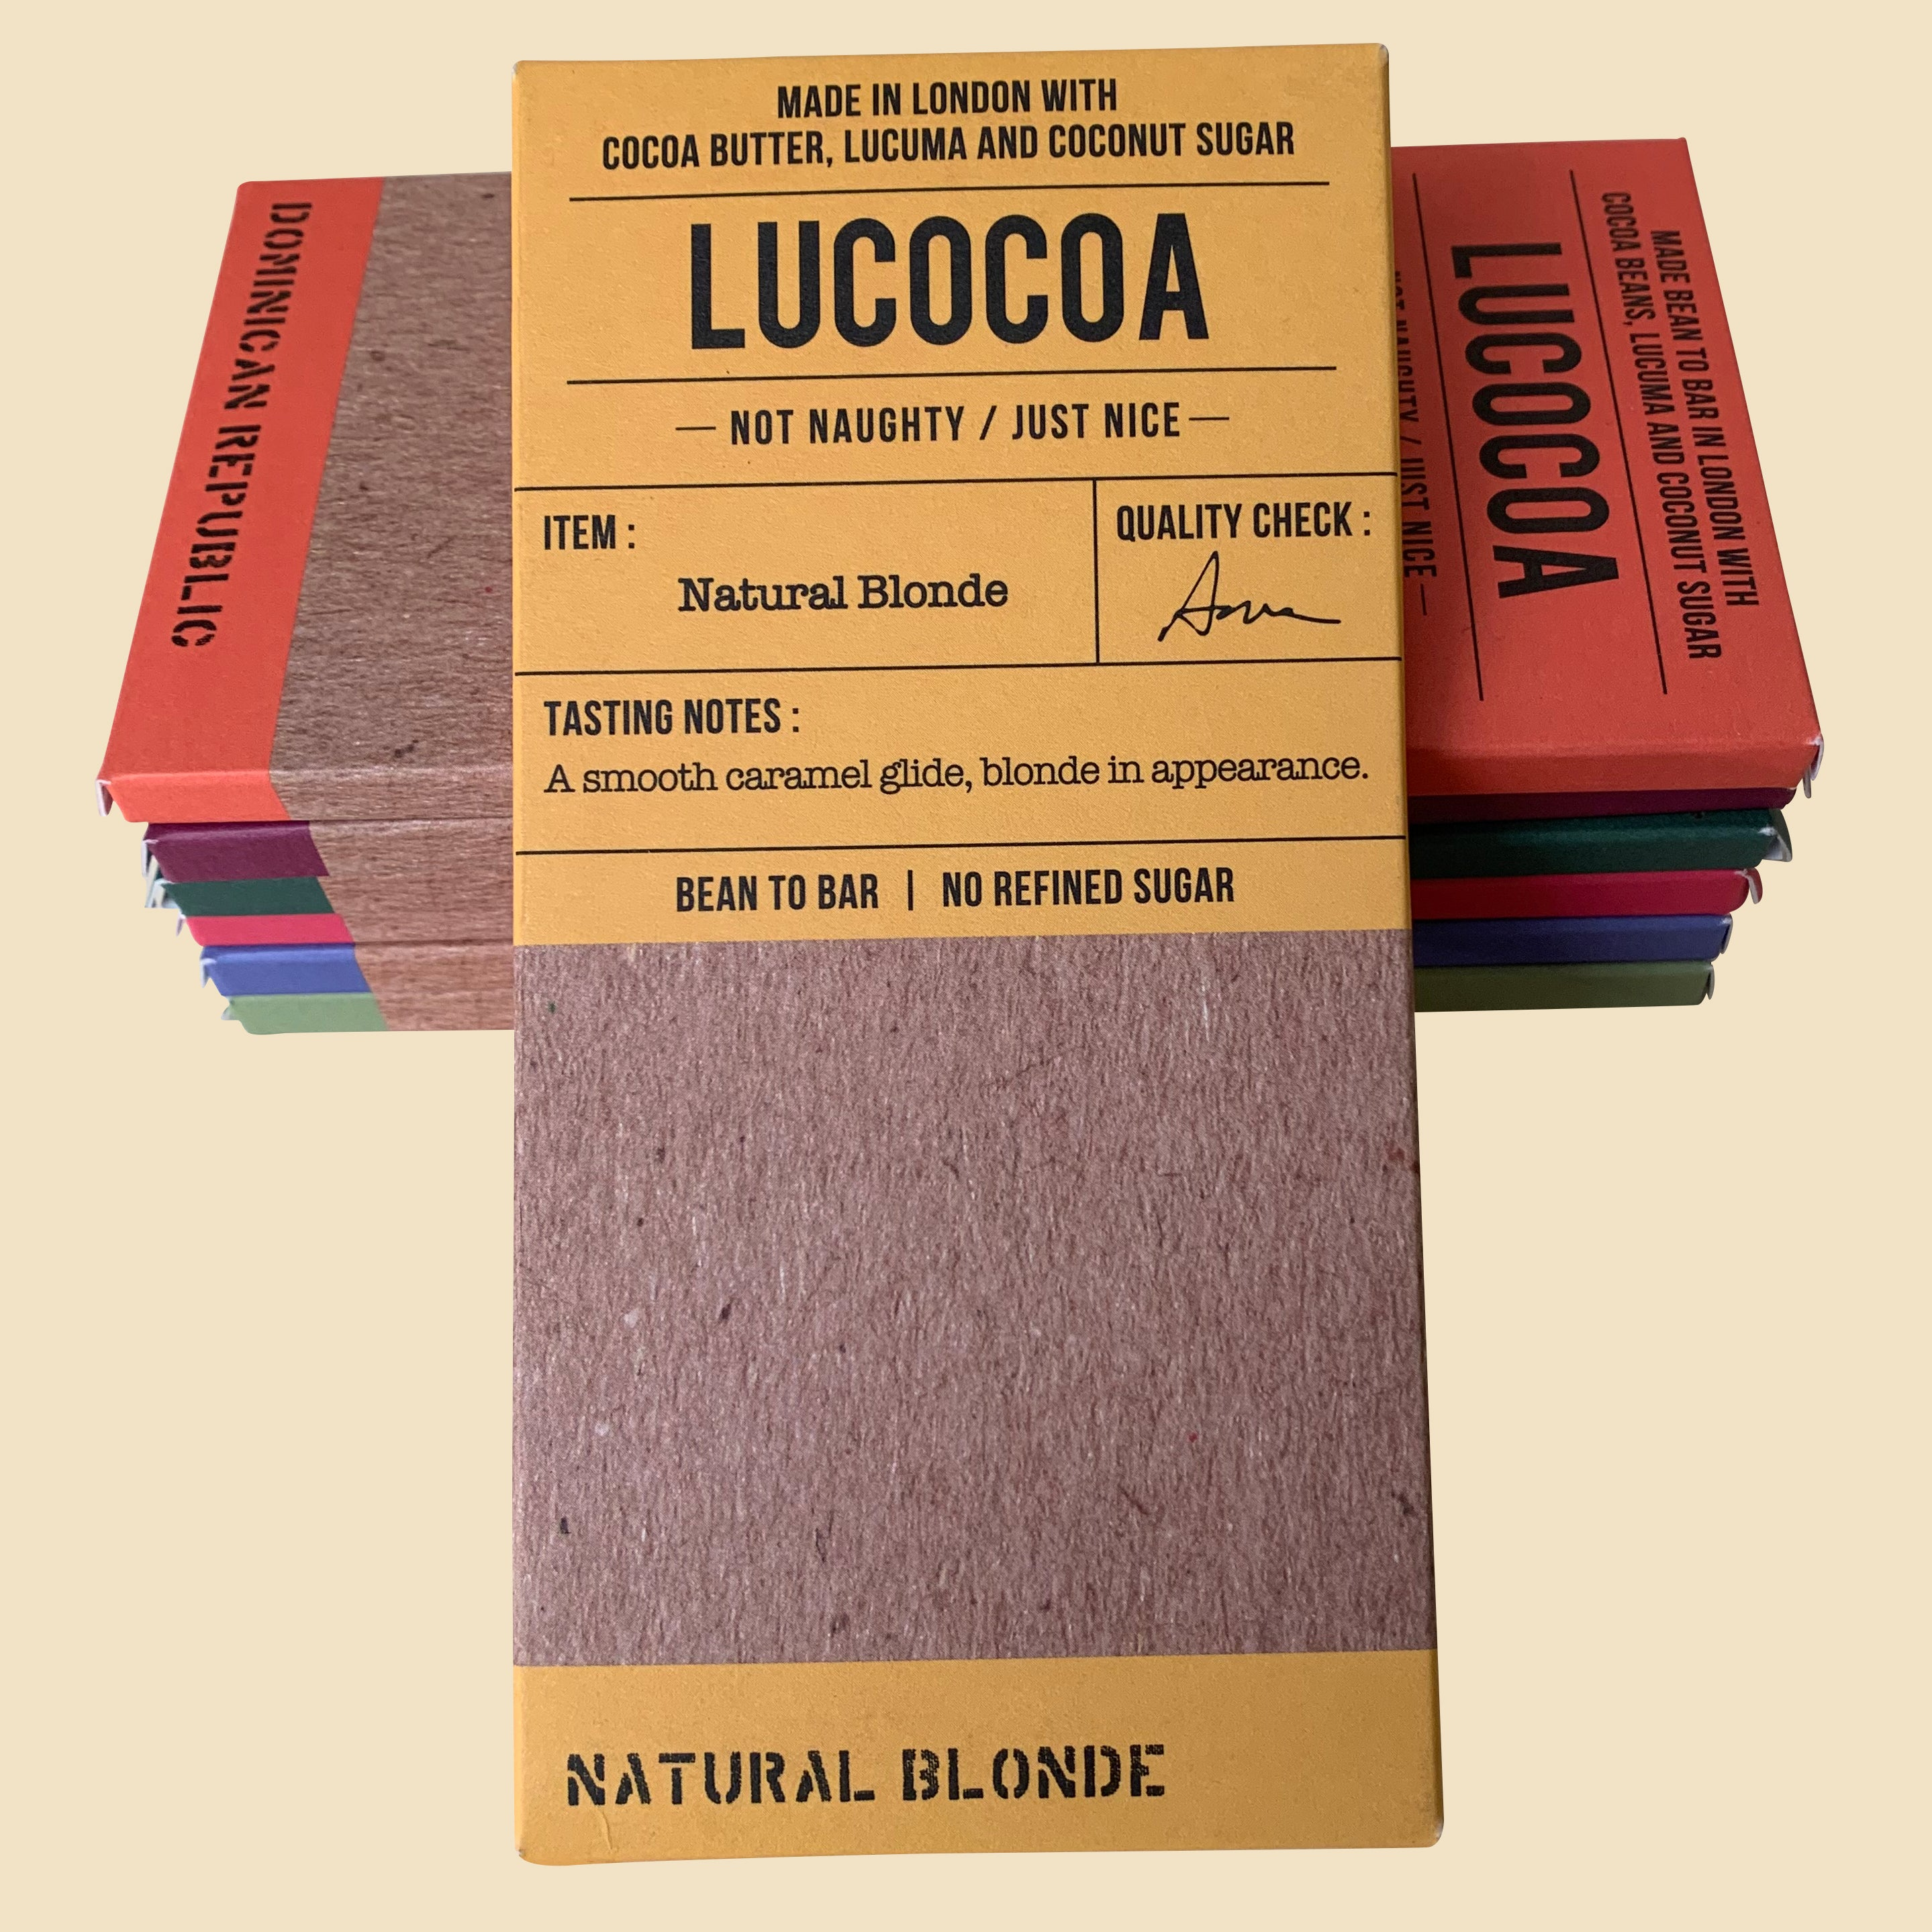 Natural Blonde White Chocolate 40% cocoa